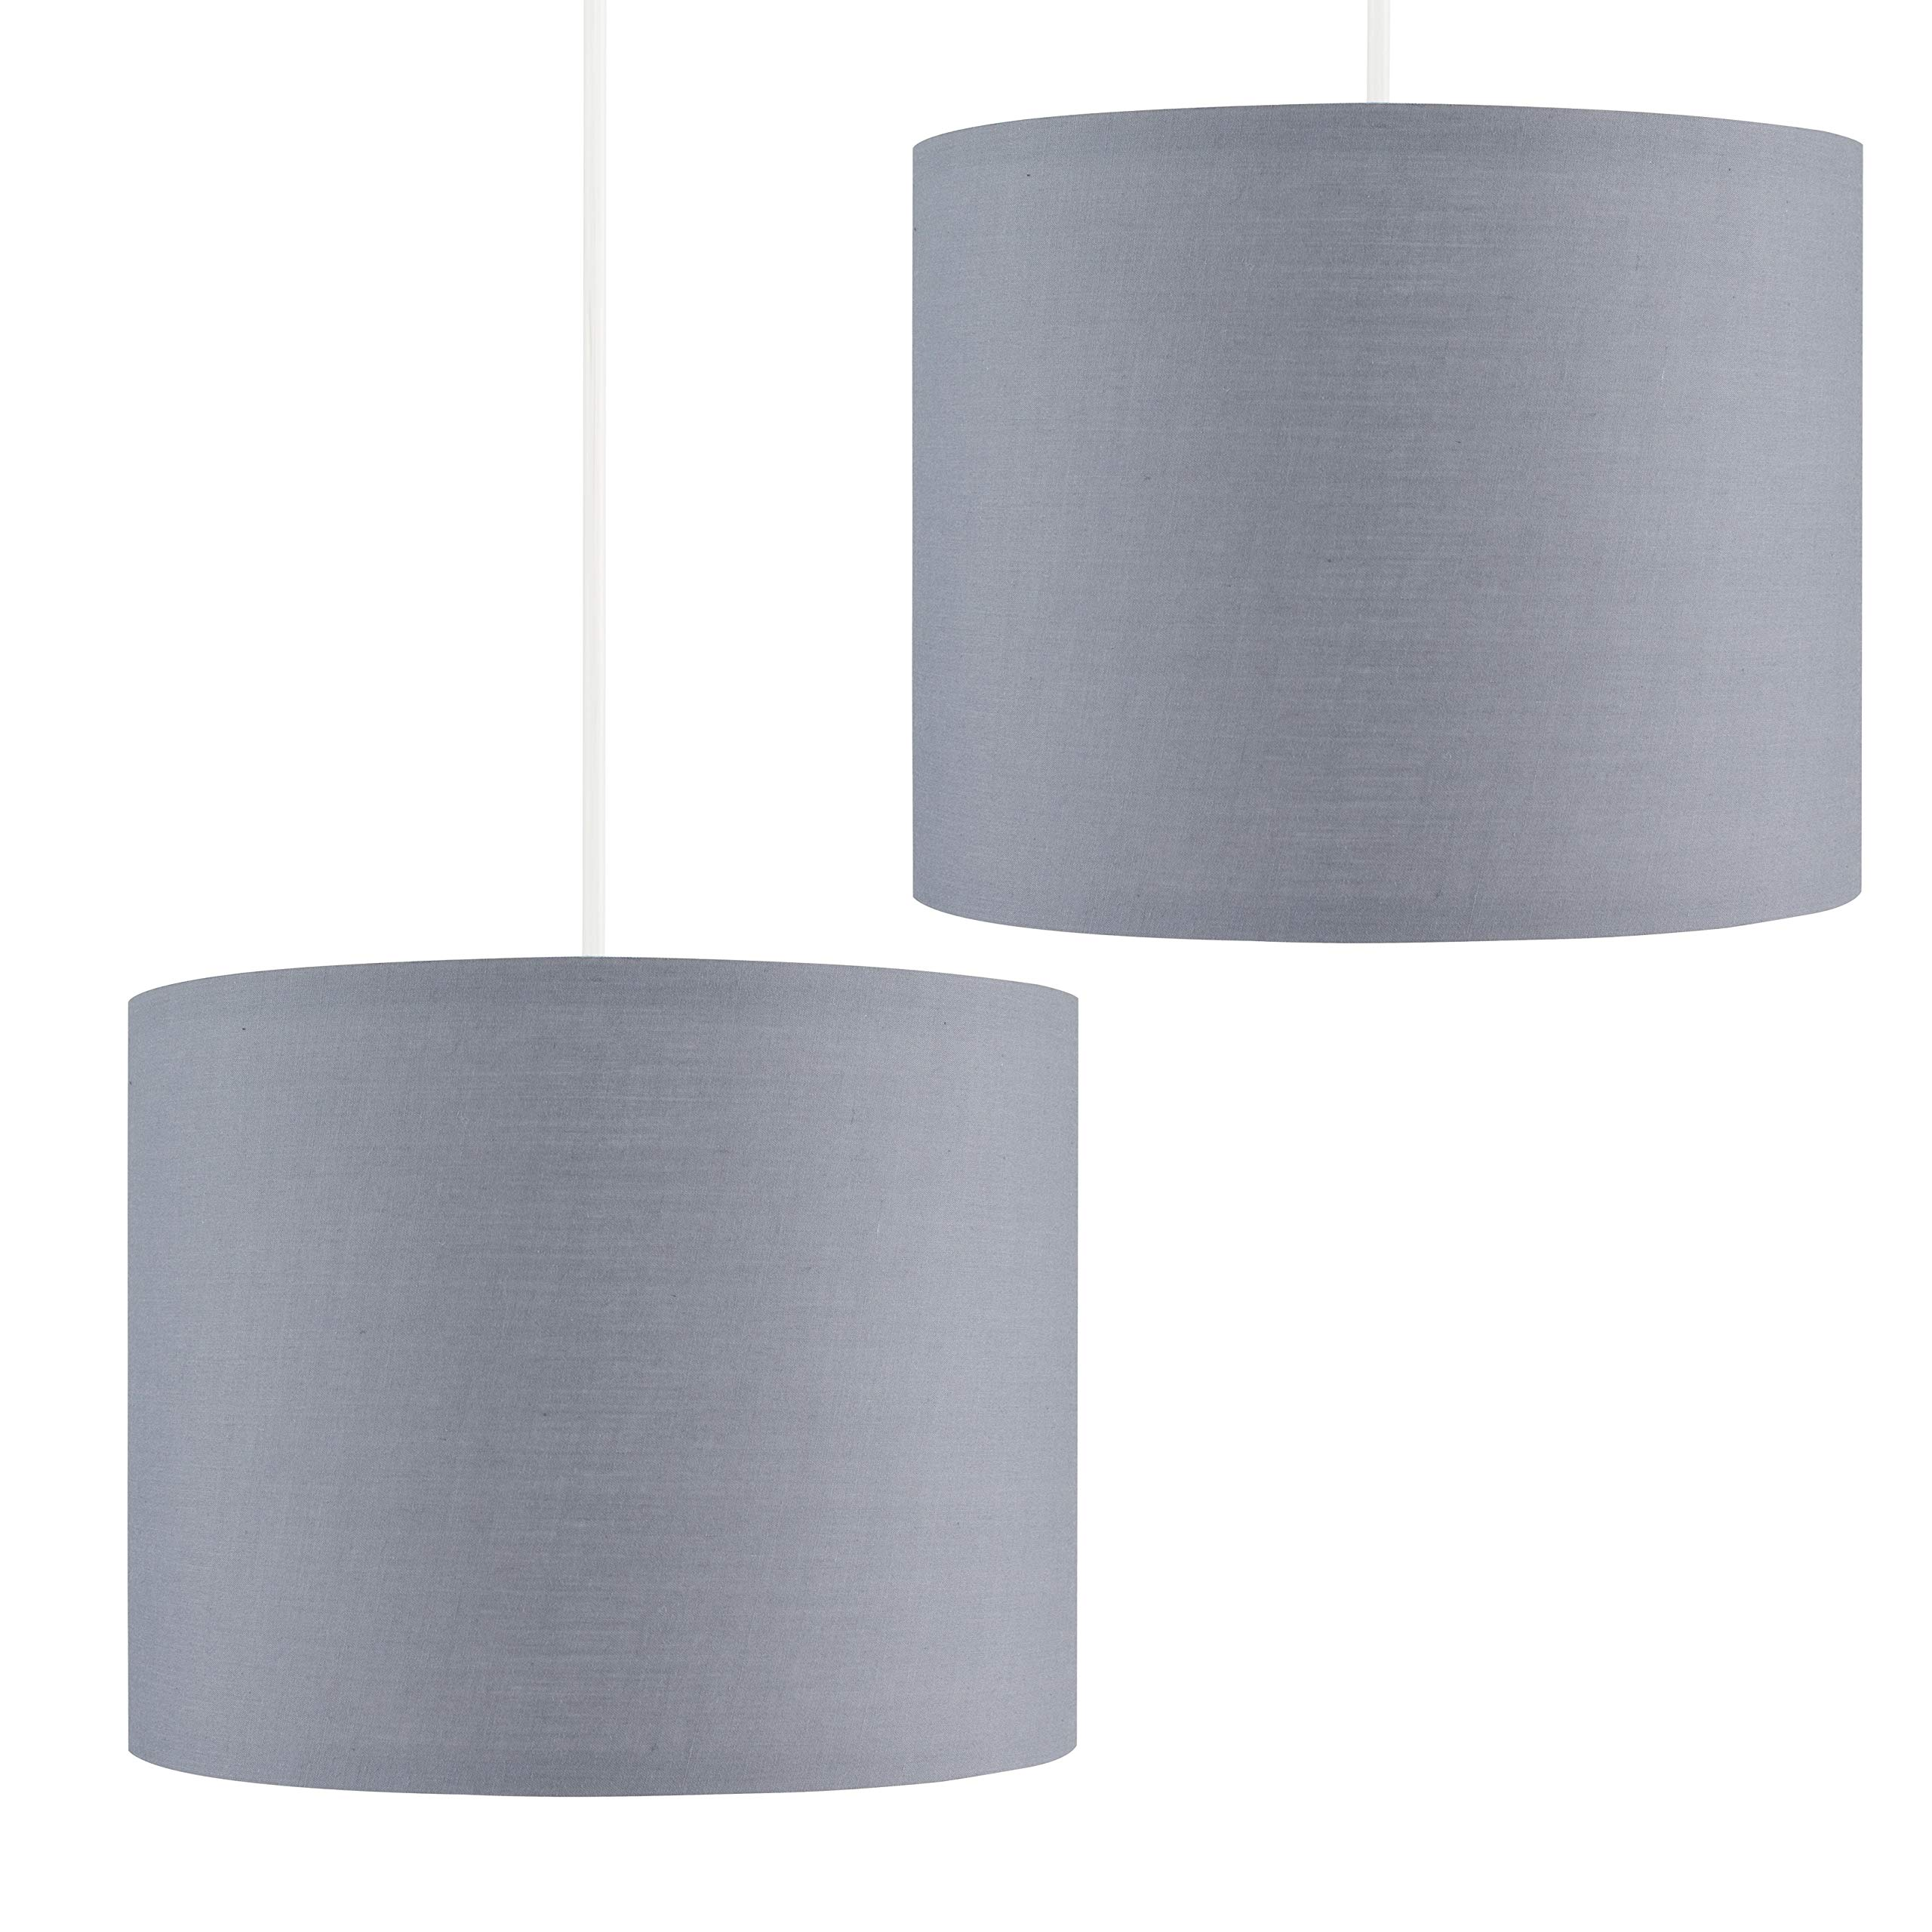 Pair Of Small Modern Grey Polycotton C Buy Online In Canada At Desertcart